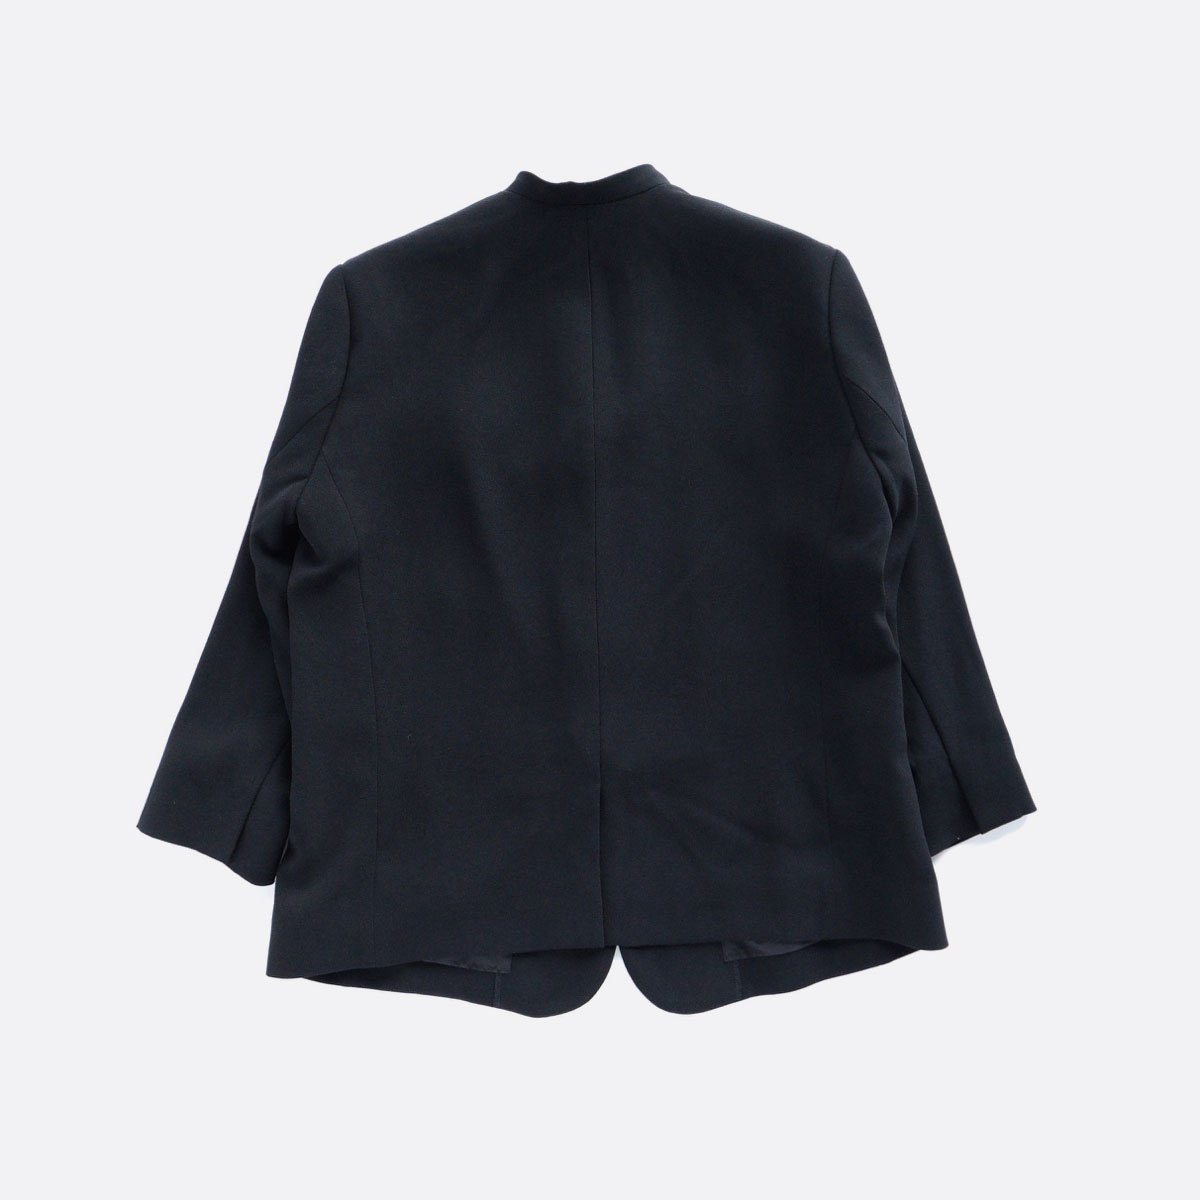 NO CONTROL AIR ACETATE & POLYESTER DOUBLE CROTH NO COLOR JACKET (BLACK)2